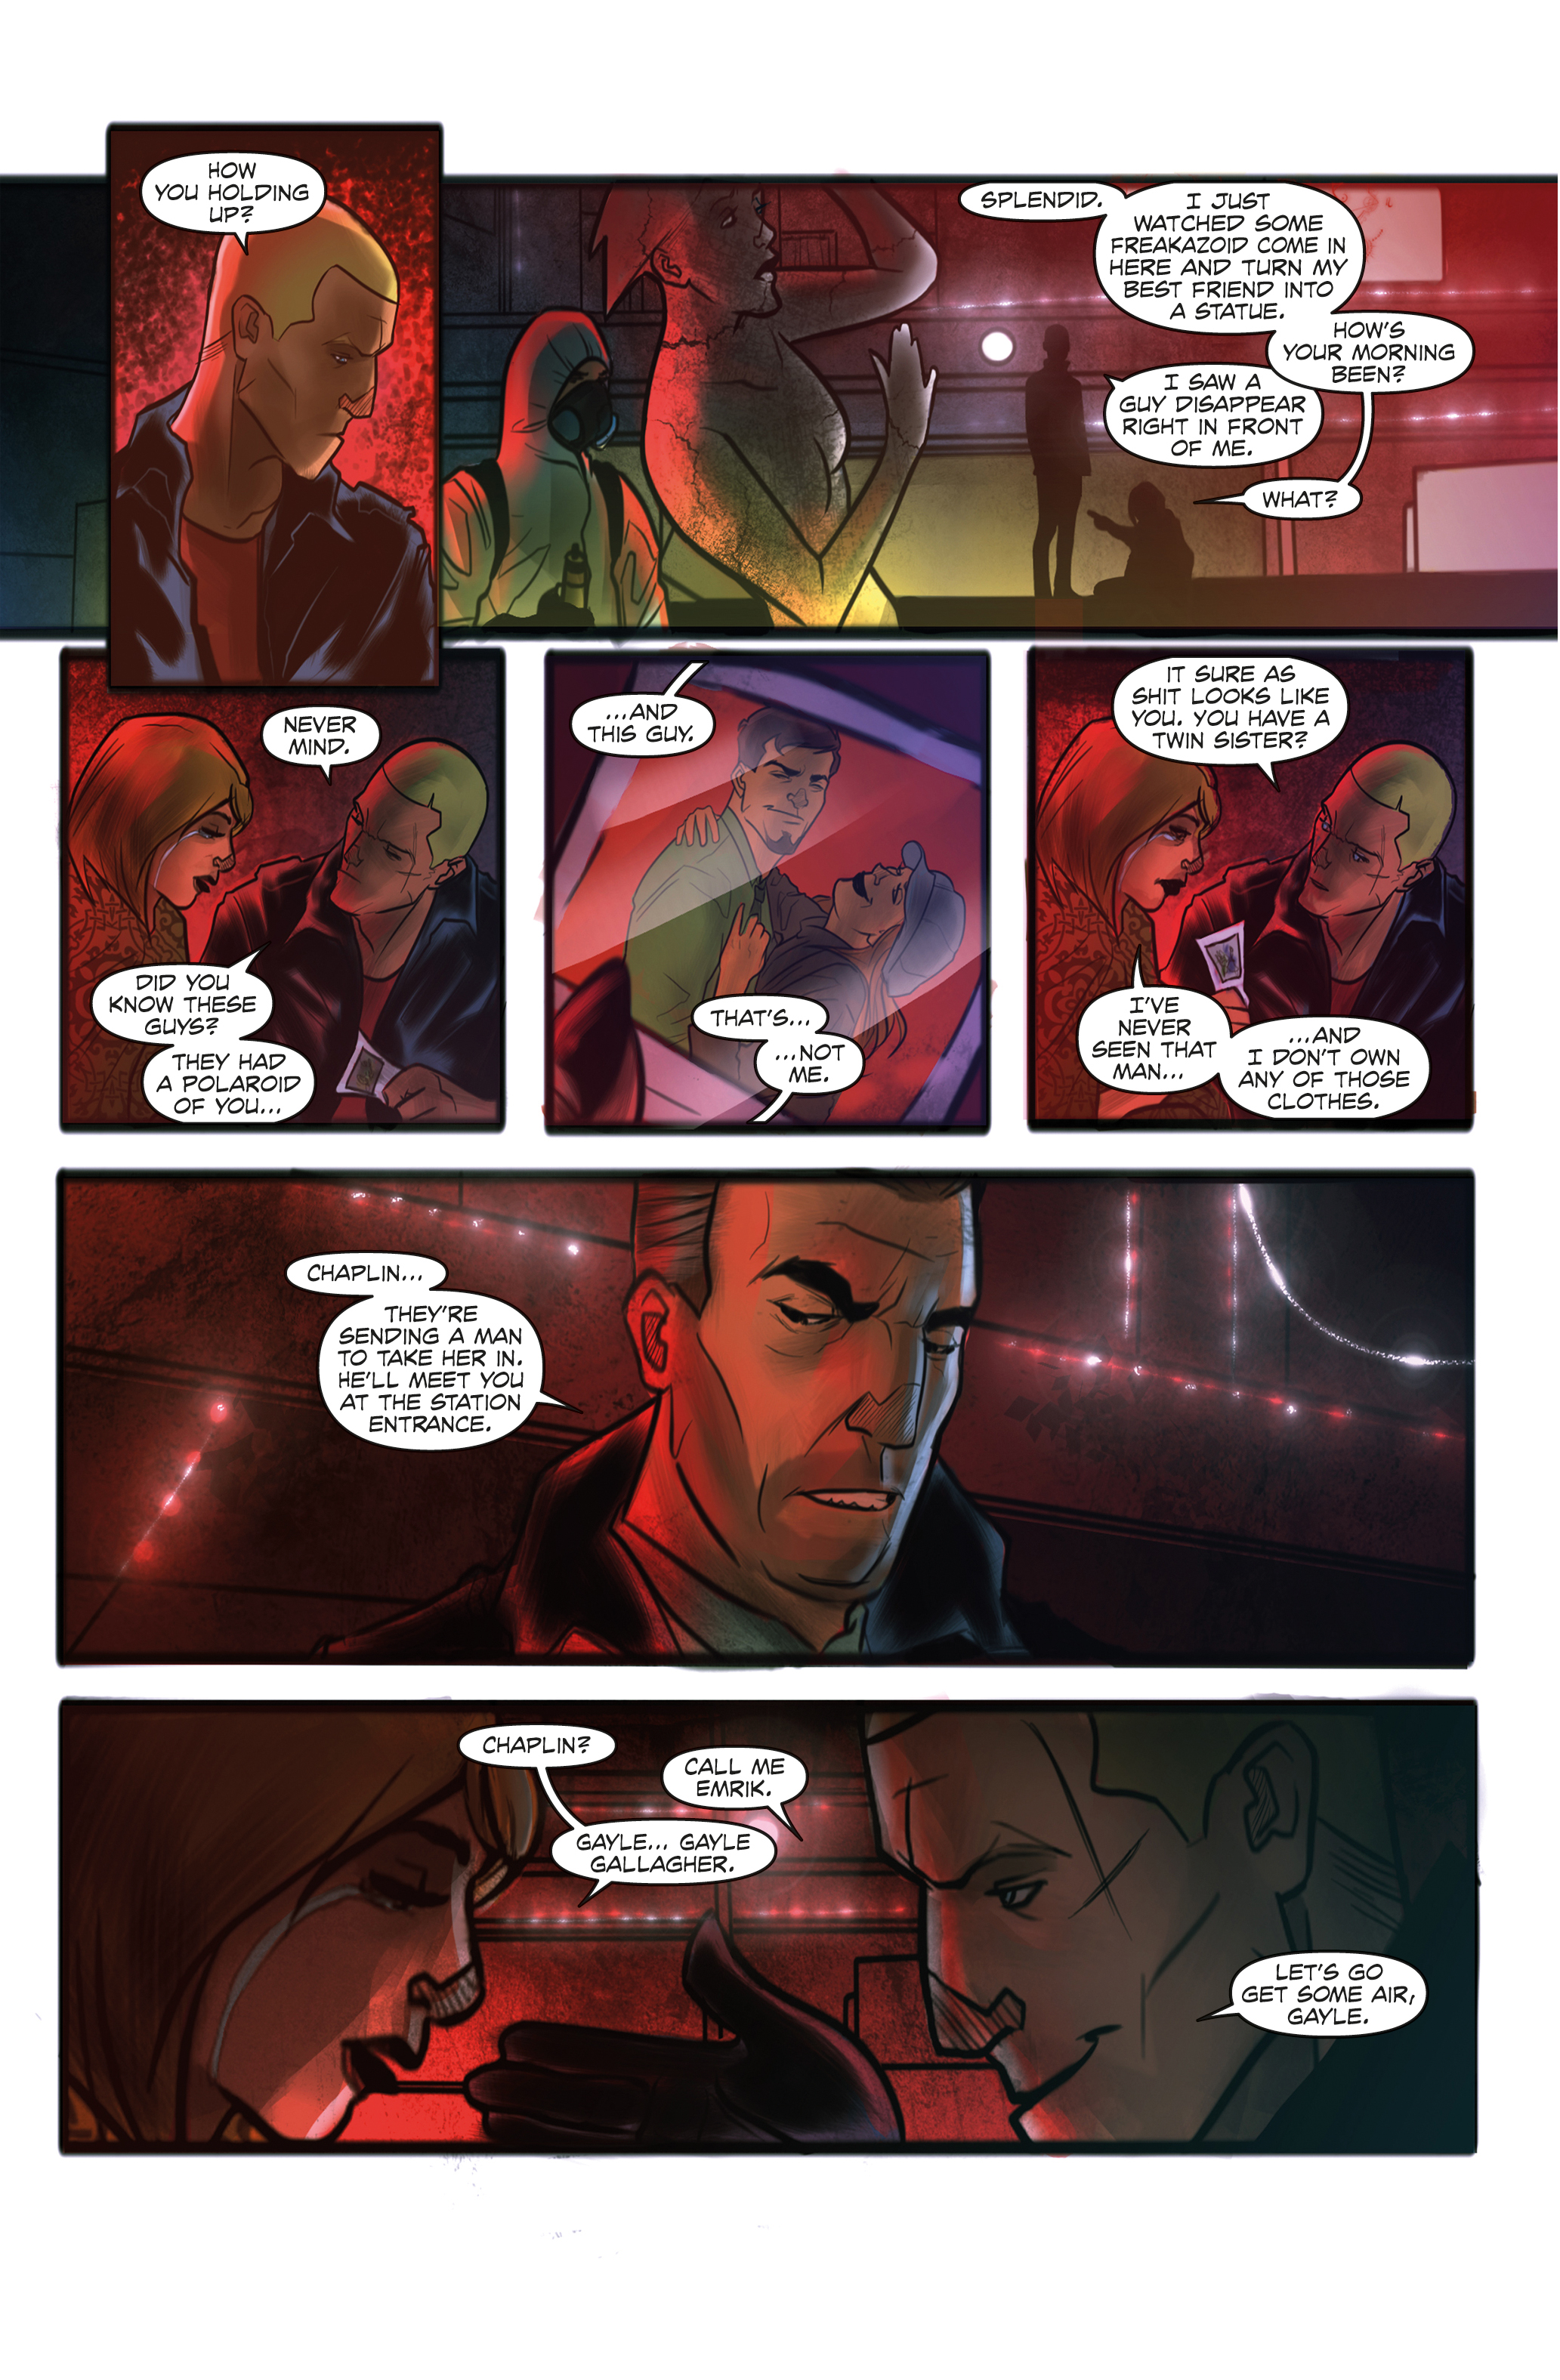 Shelter Division #1 Page 15-01.jpg